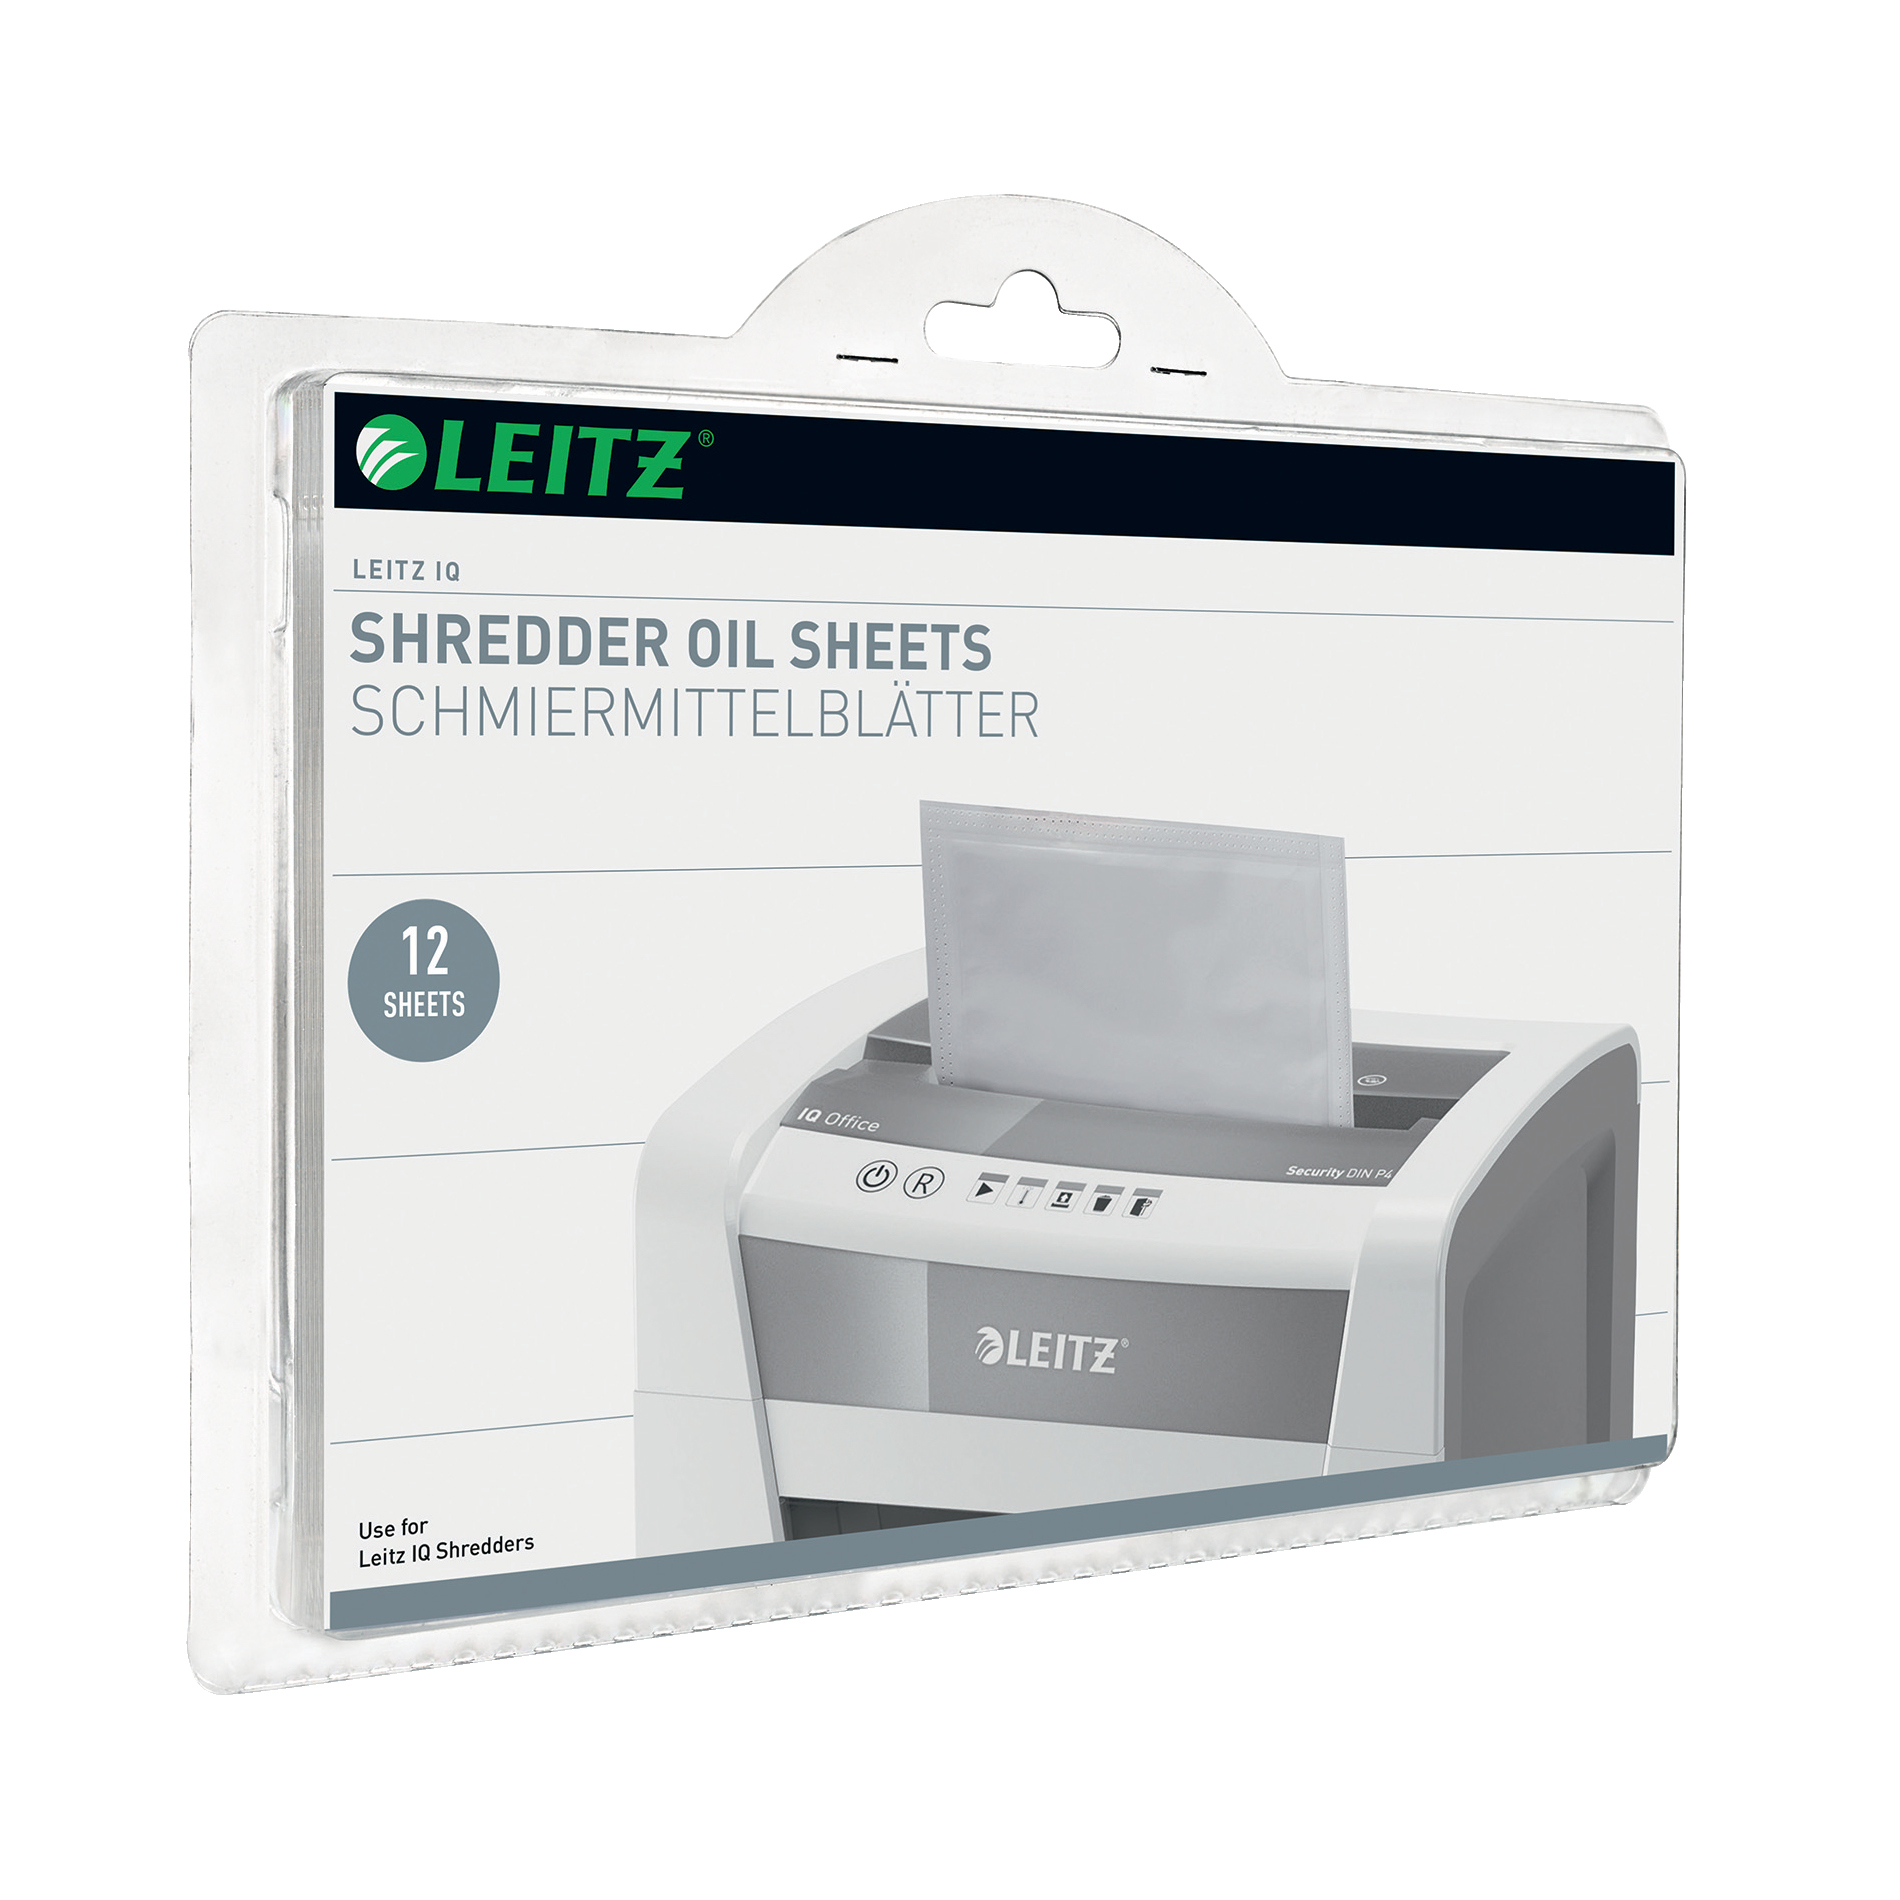 Leitz Oil Sheets for IQ Shredder Ref 80070000 [Pack 12]